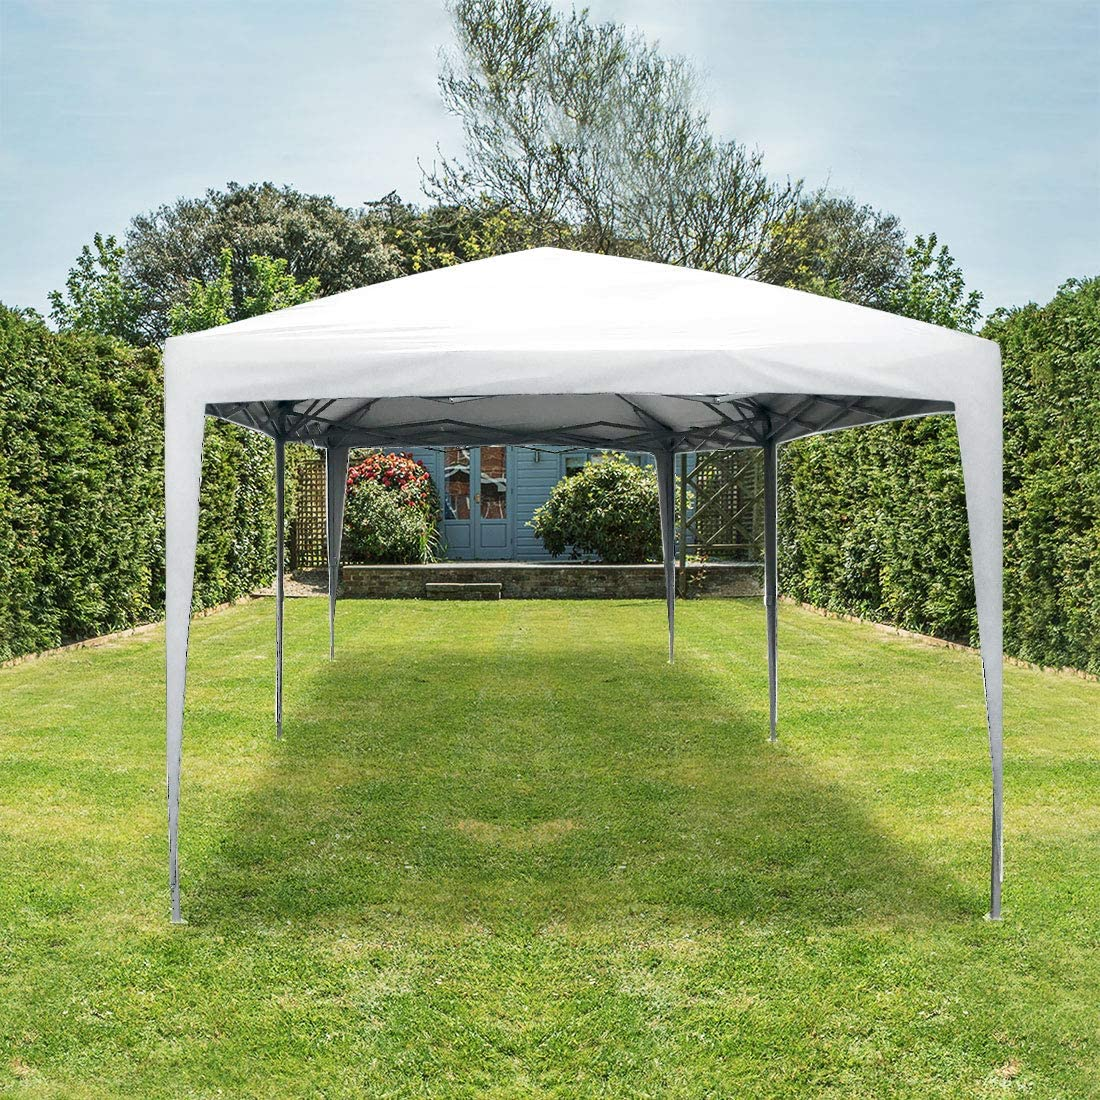 Quictent Privacy 10×20 EZ Pop Up Canopy Tent Party Tent Outdoor Event Gazebo Waterproof with Roller Bag White